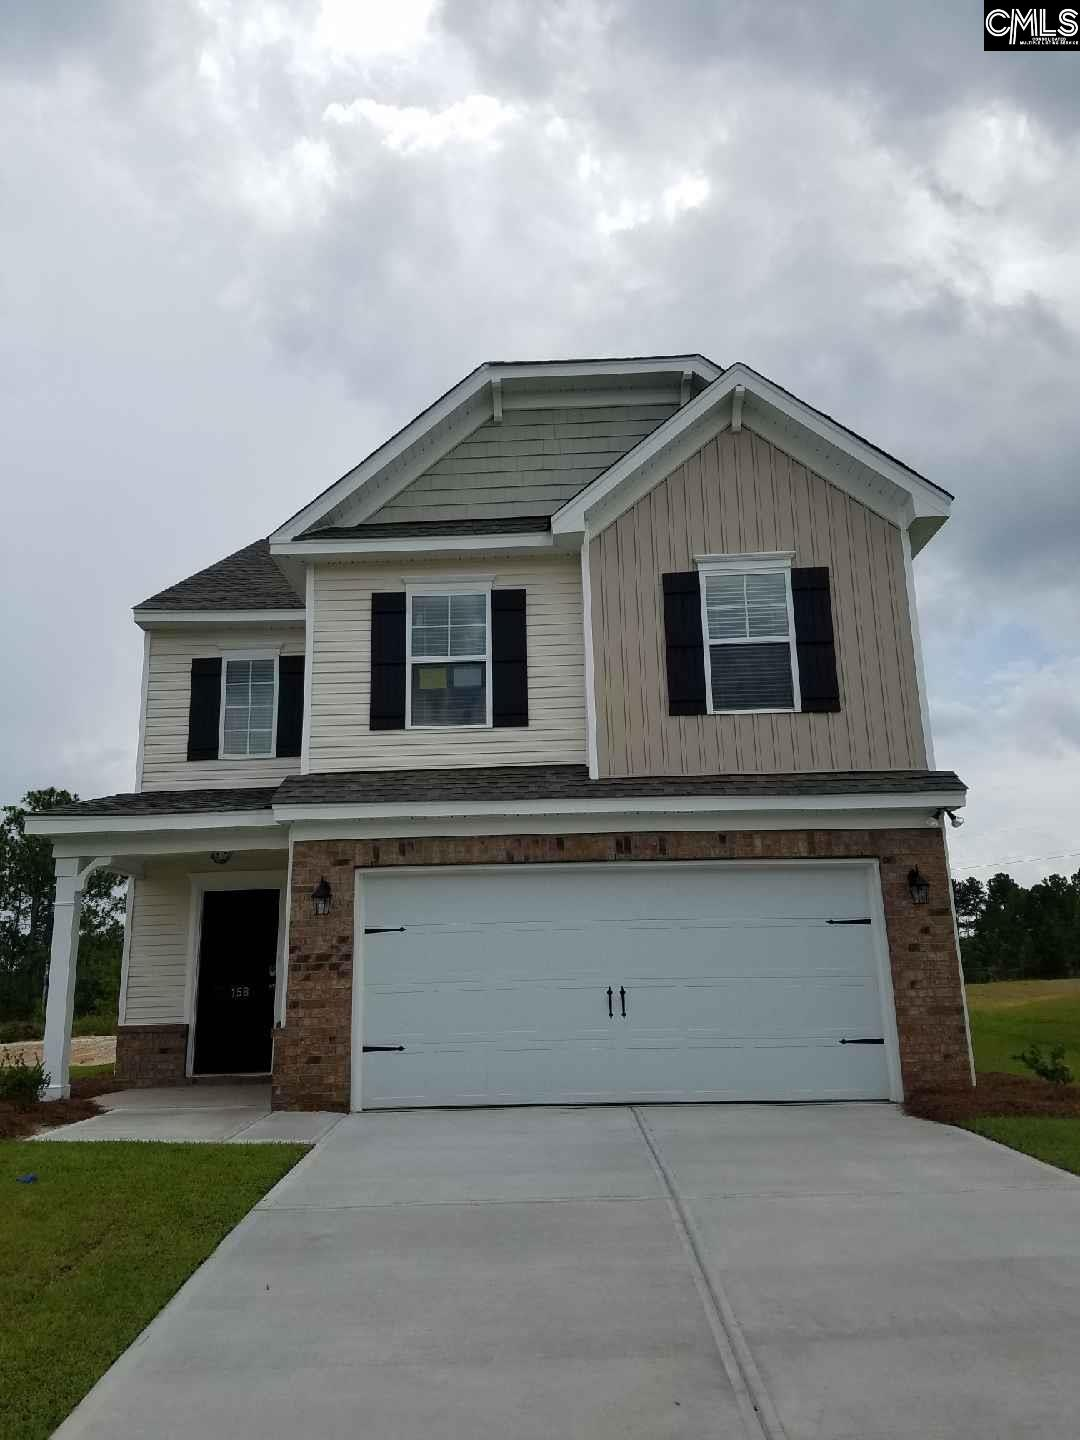 158 Turnfield West Columbia, SC 29170